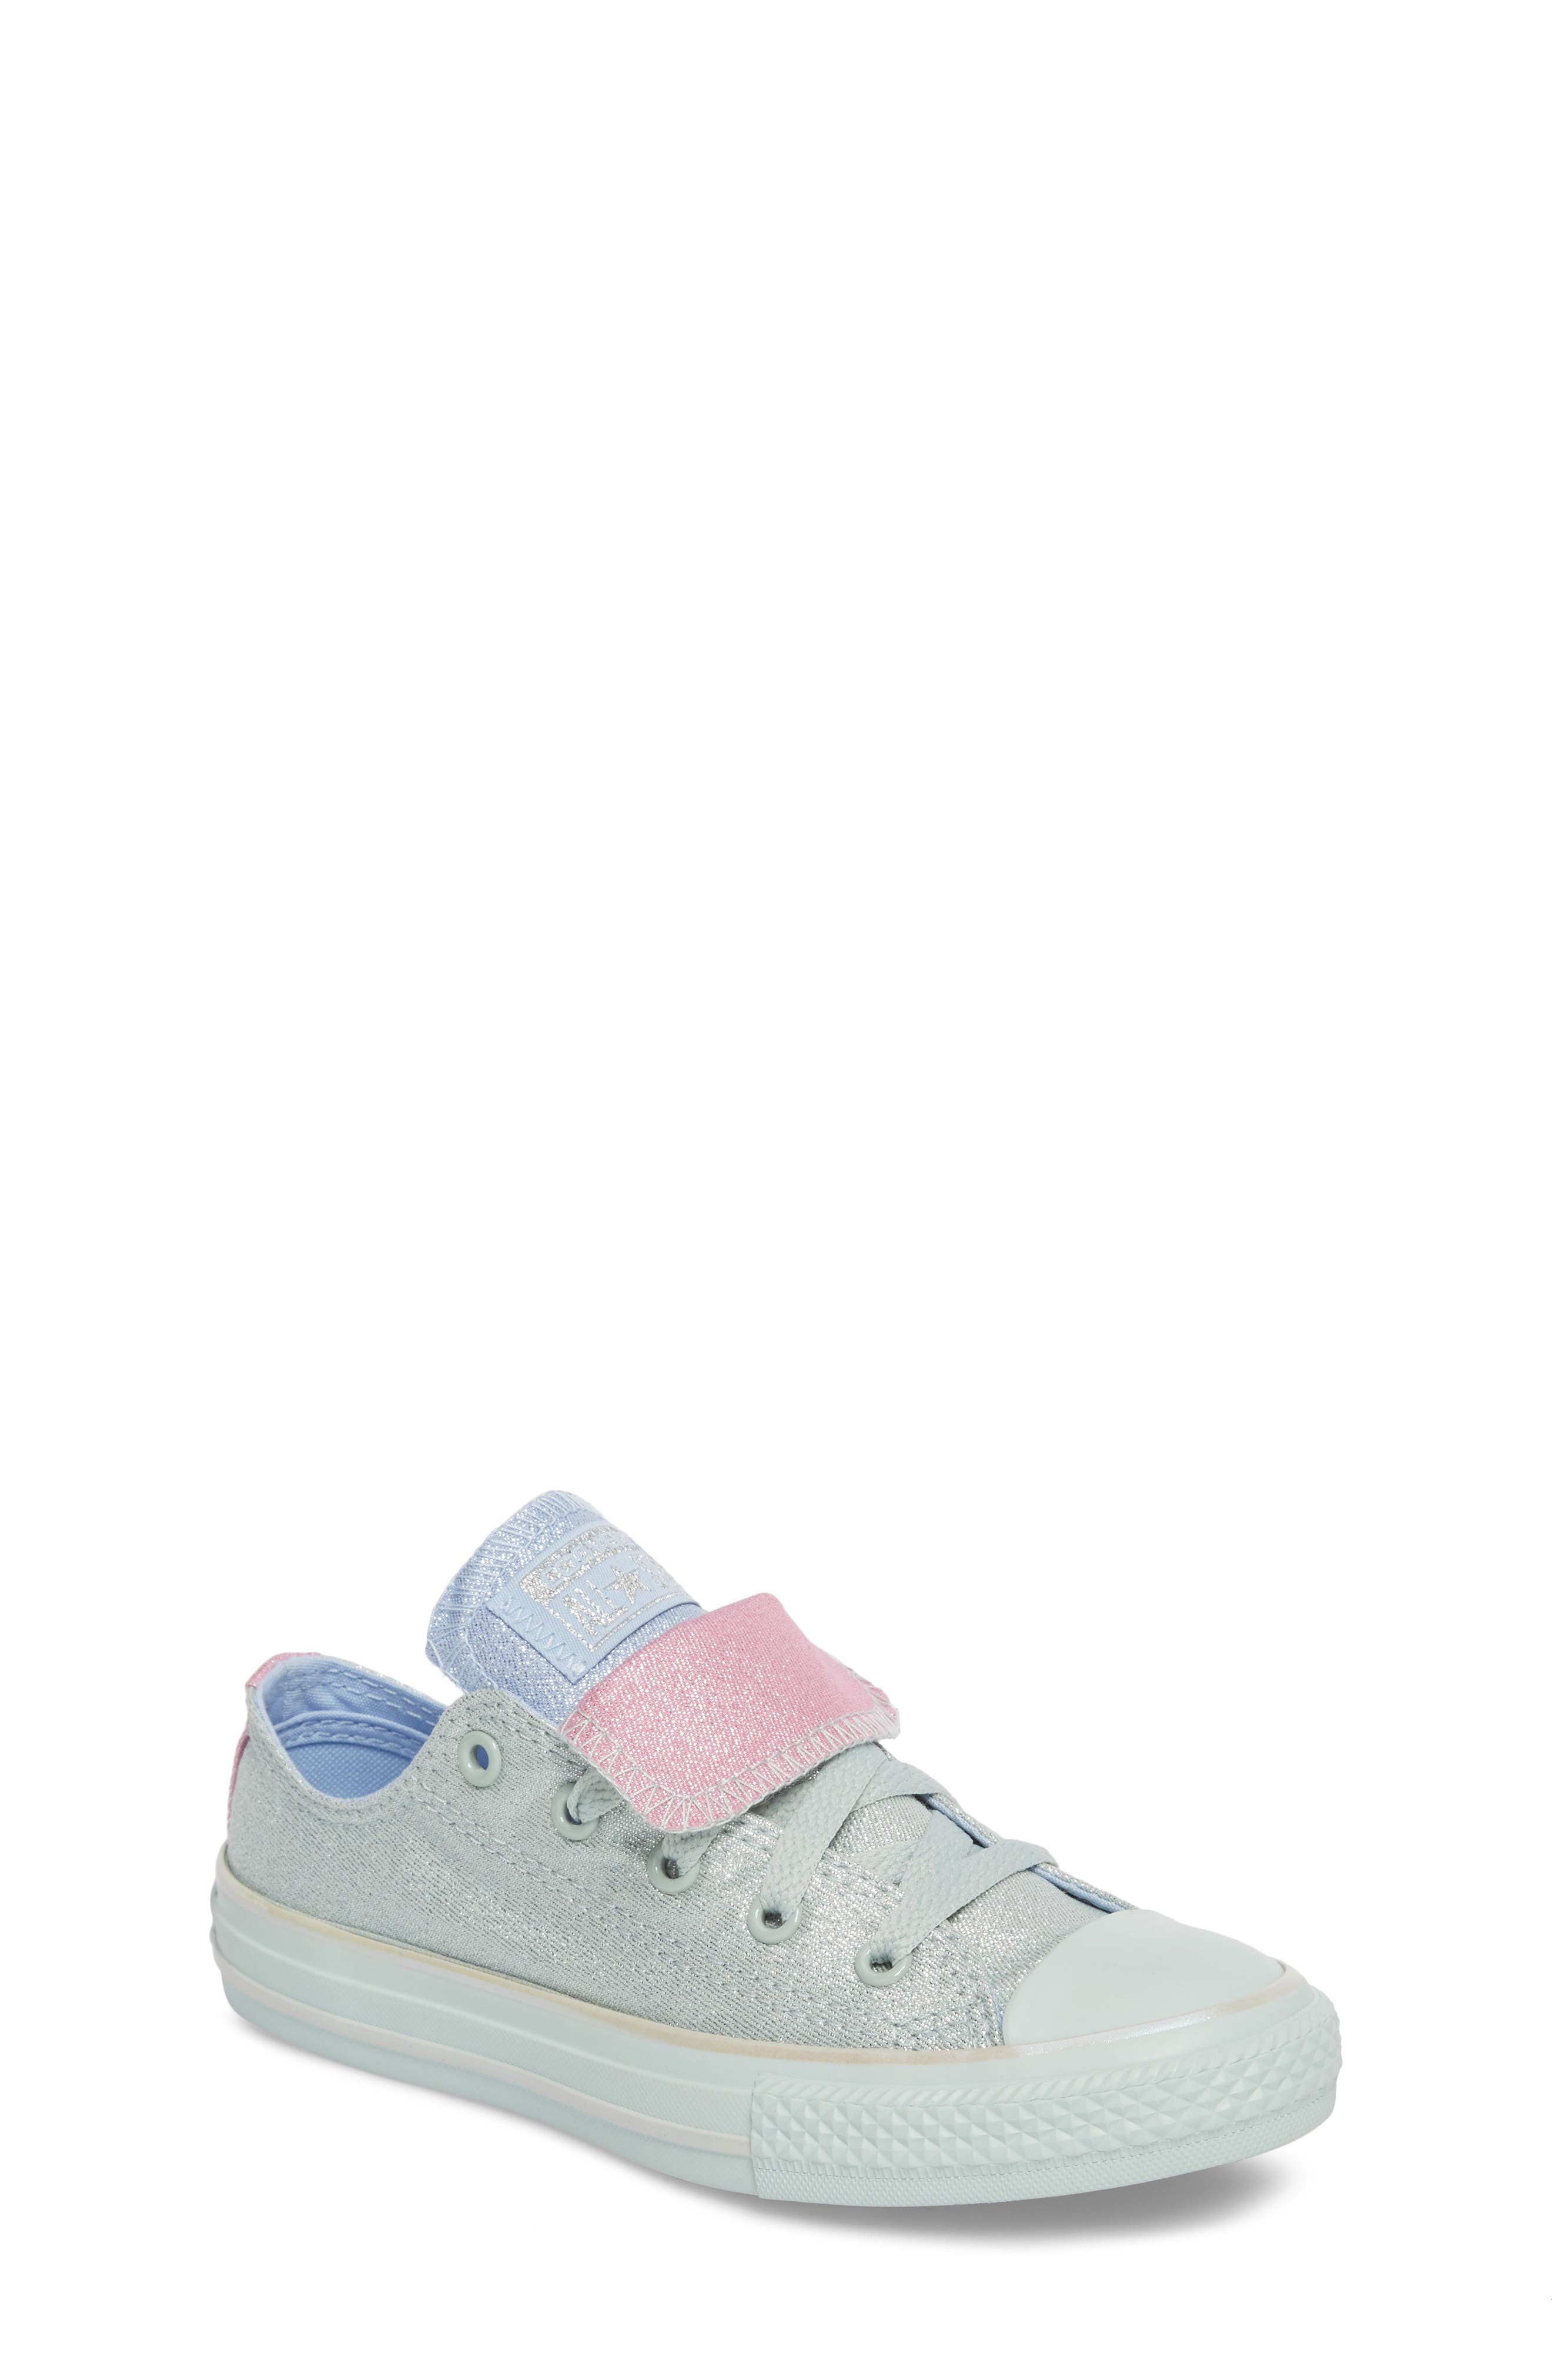 Alternate Image 1 Selected - Converse All Star® Shimmer Double Tongue Sneaker (Baby, Walker, Toddler, Little Kid & Big Kid)